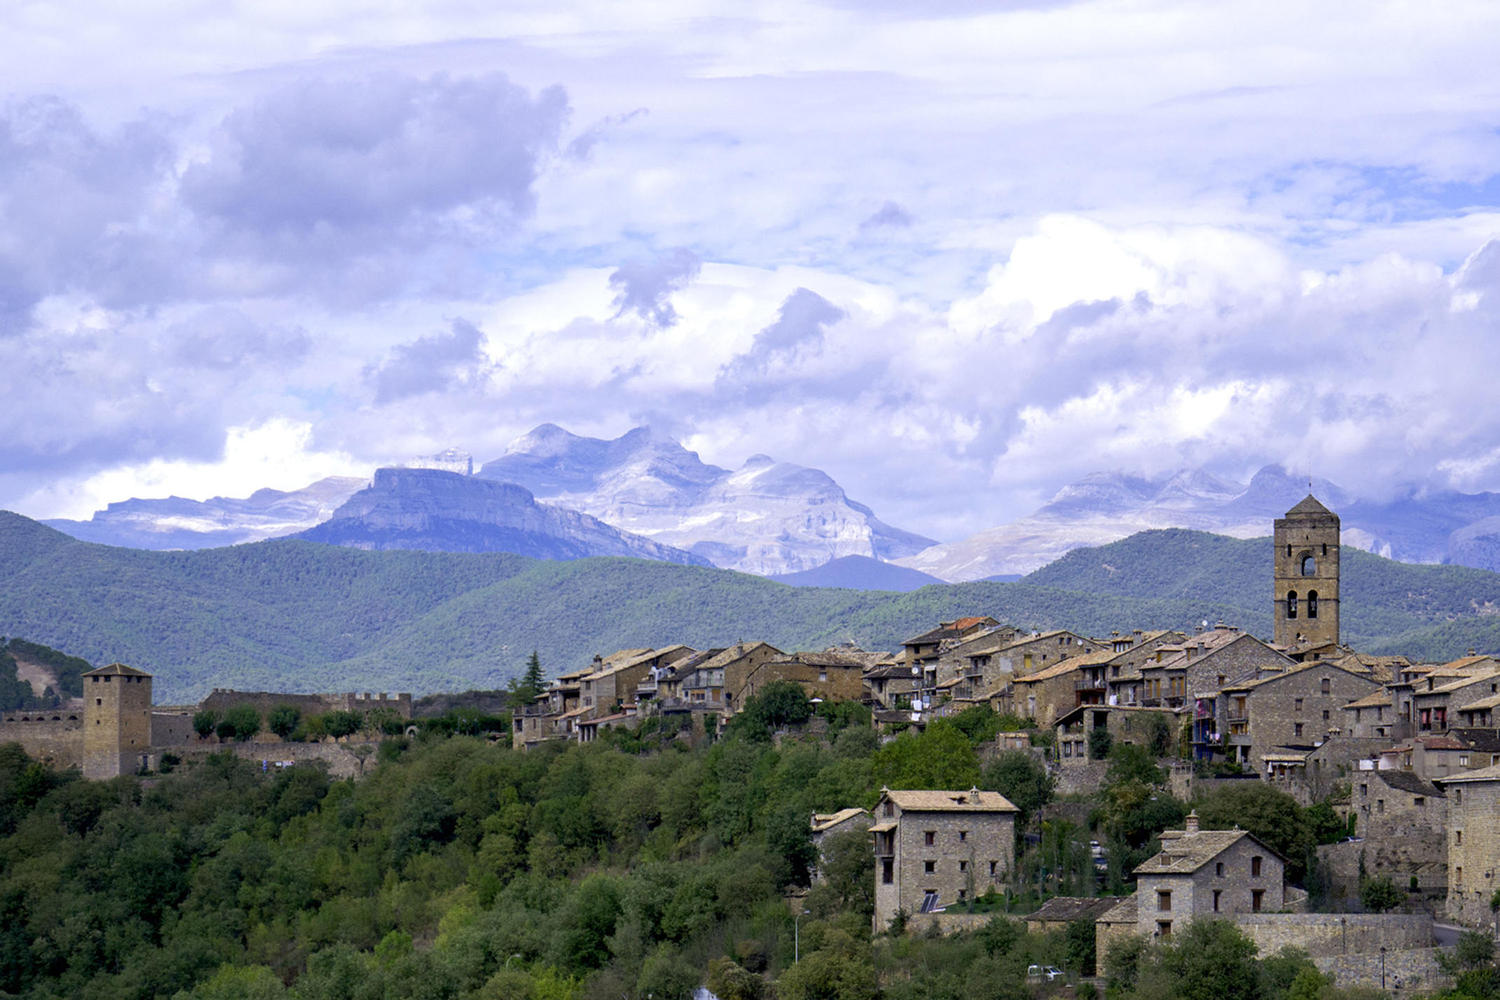 Hill top village in the foothills of the Pyrenees.